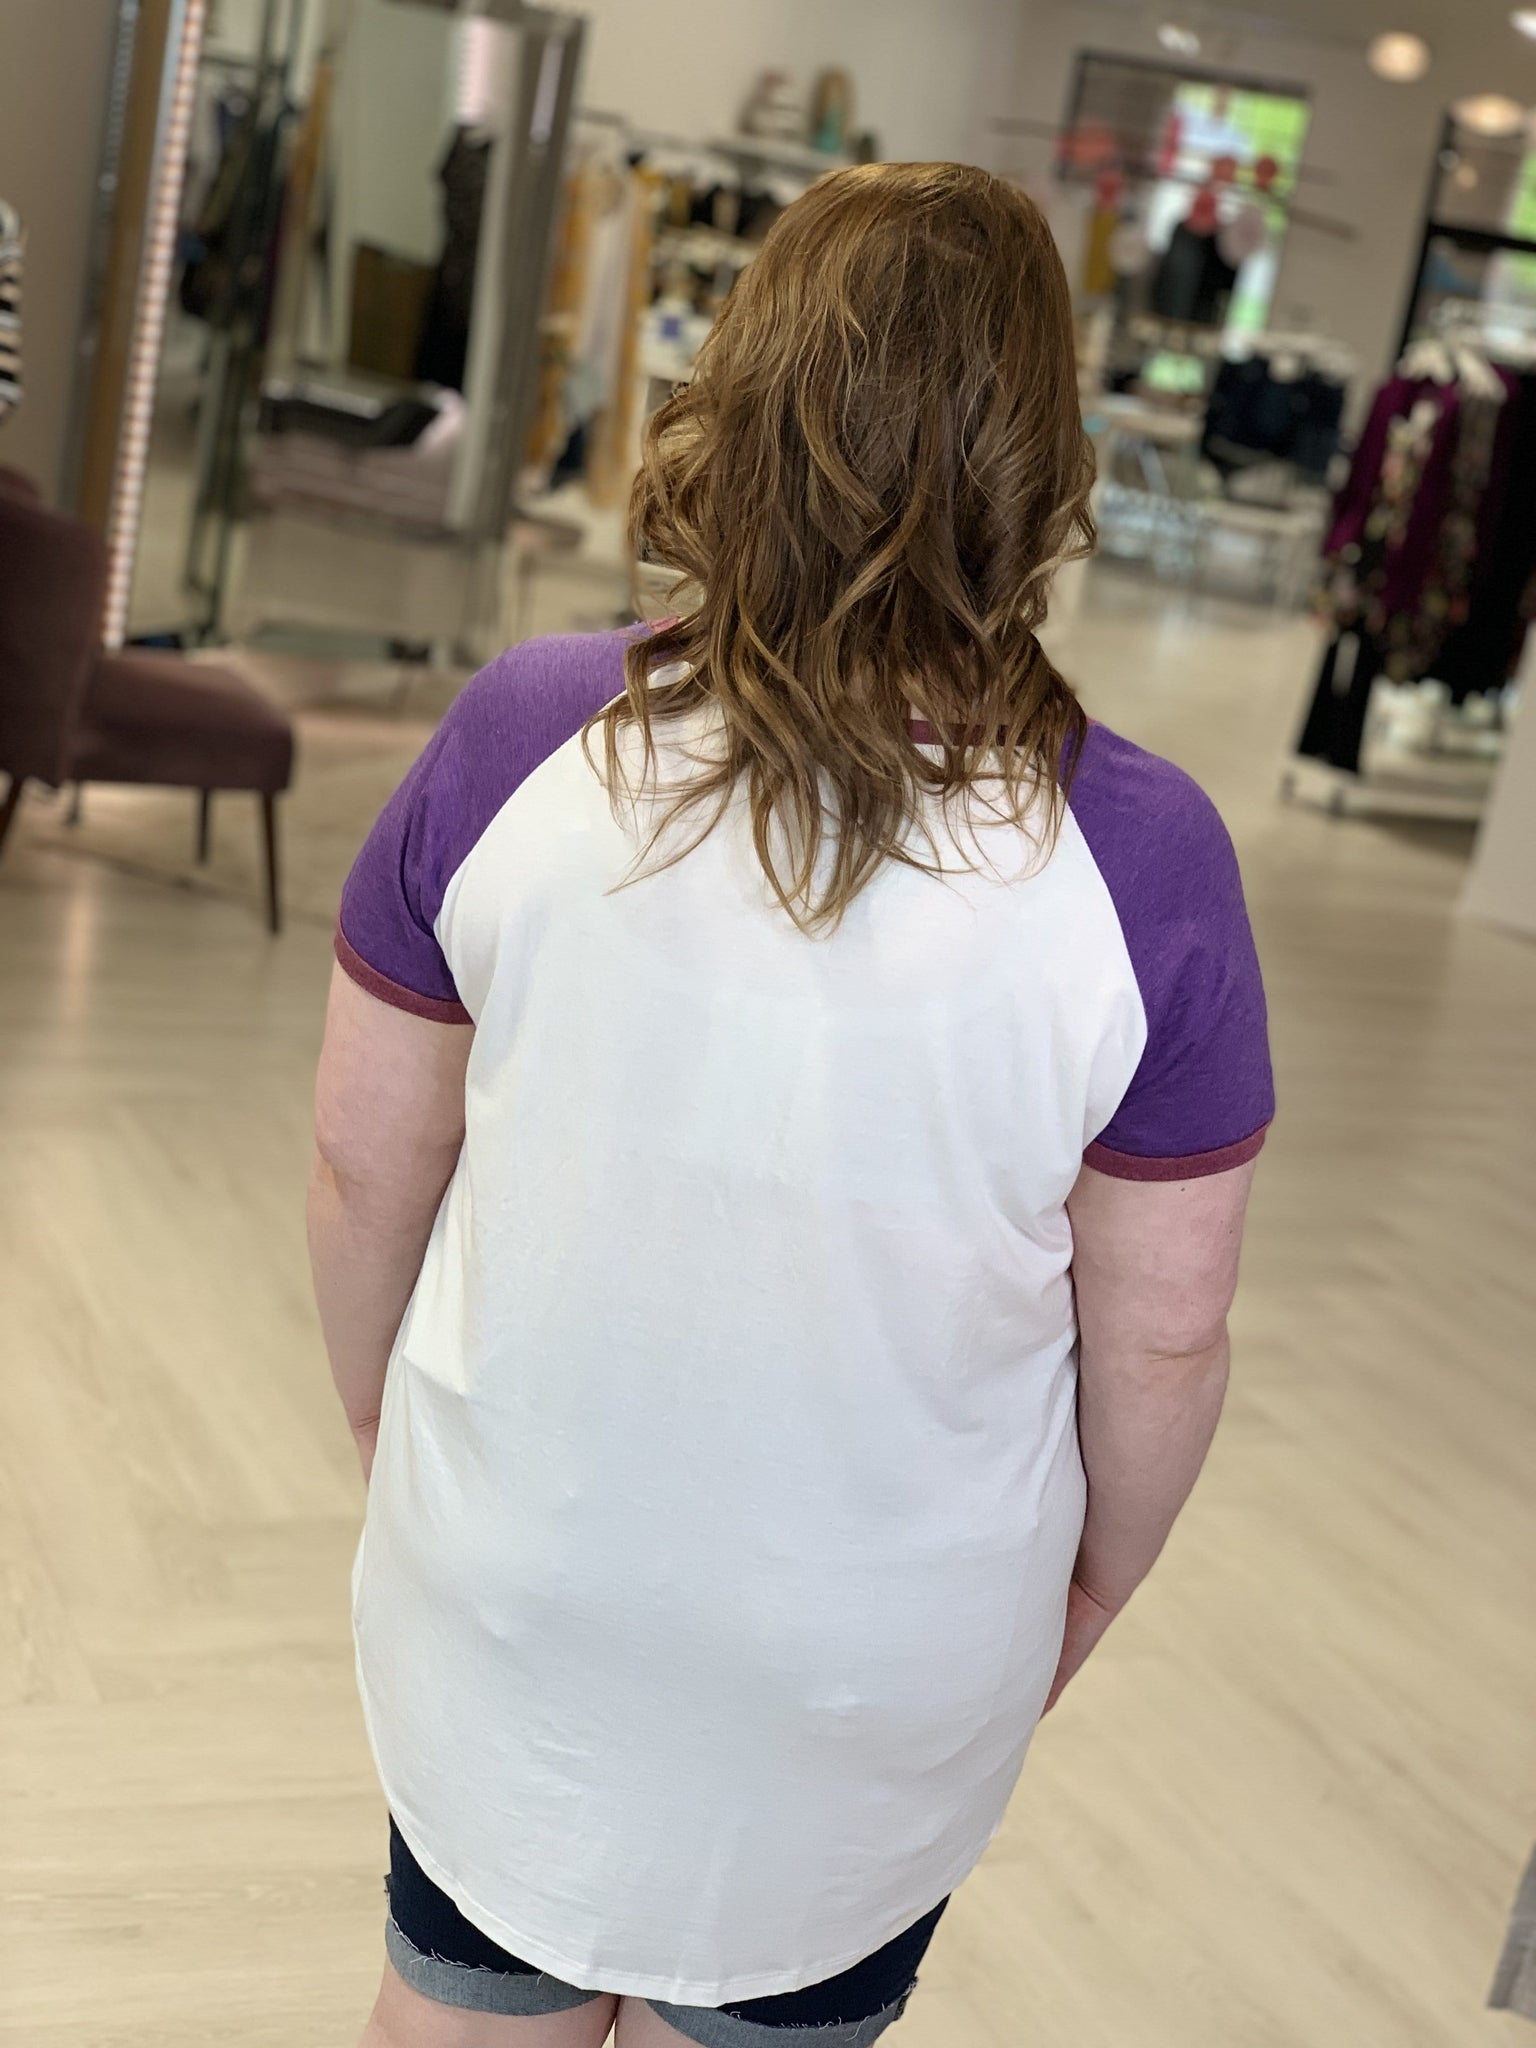 Plus Size Back of grapic tee. No writing, length is below tush.